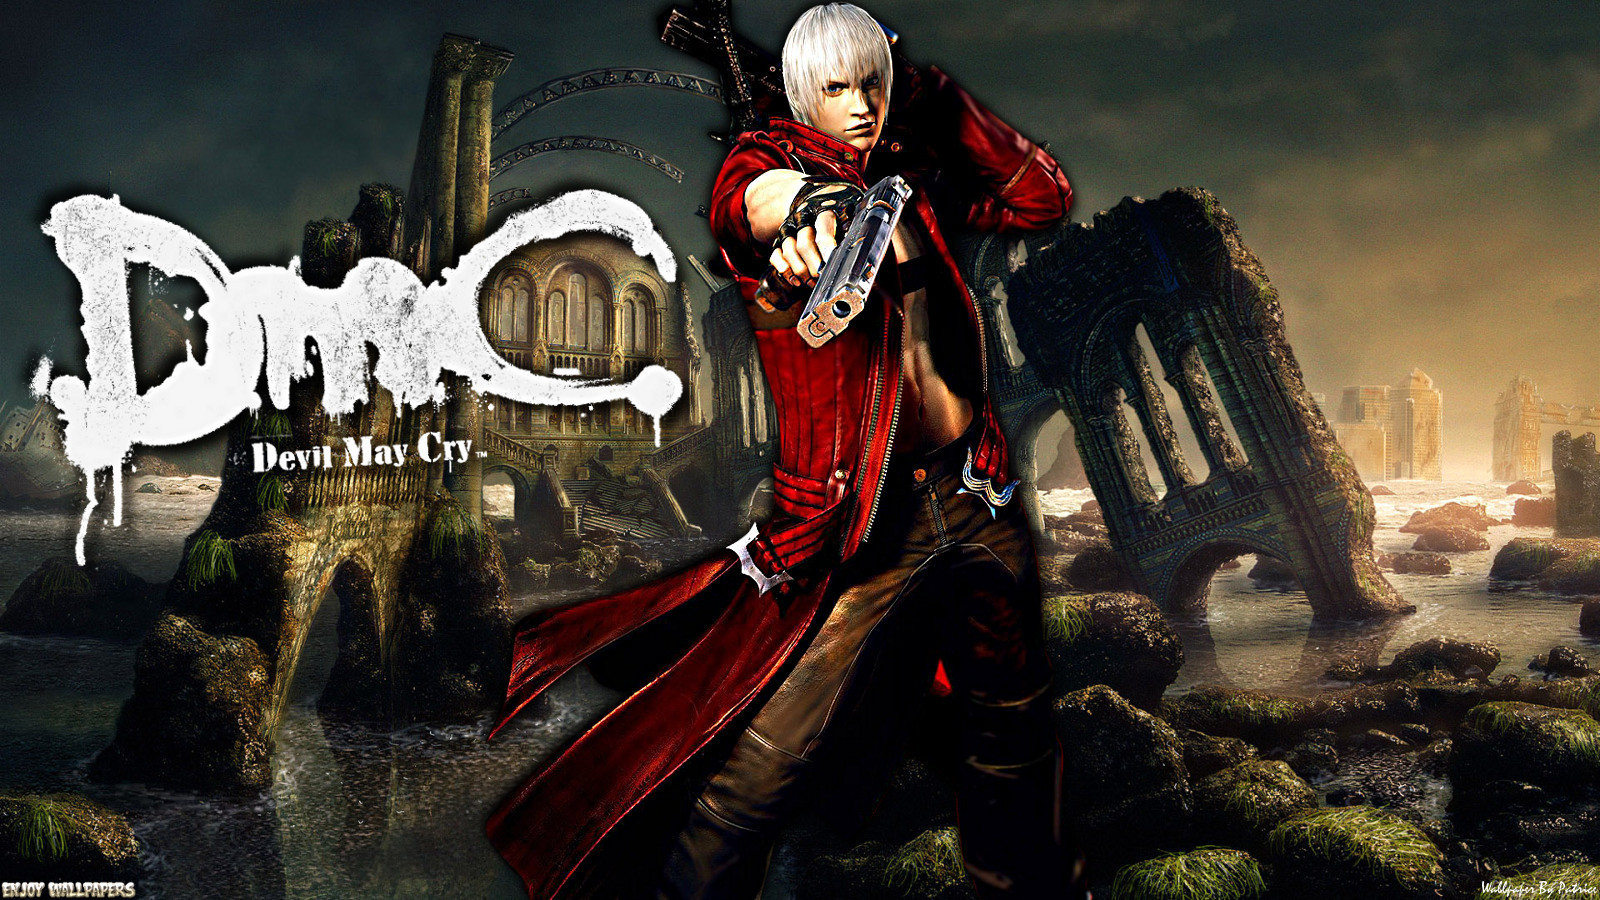 Devil May Cry 1600x900